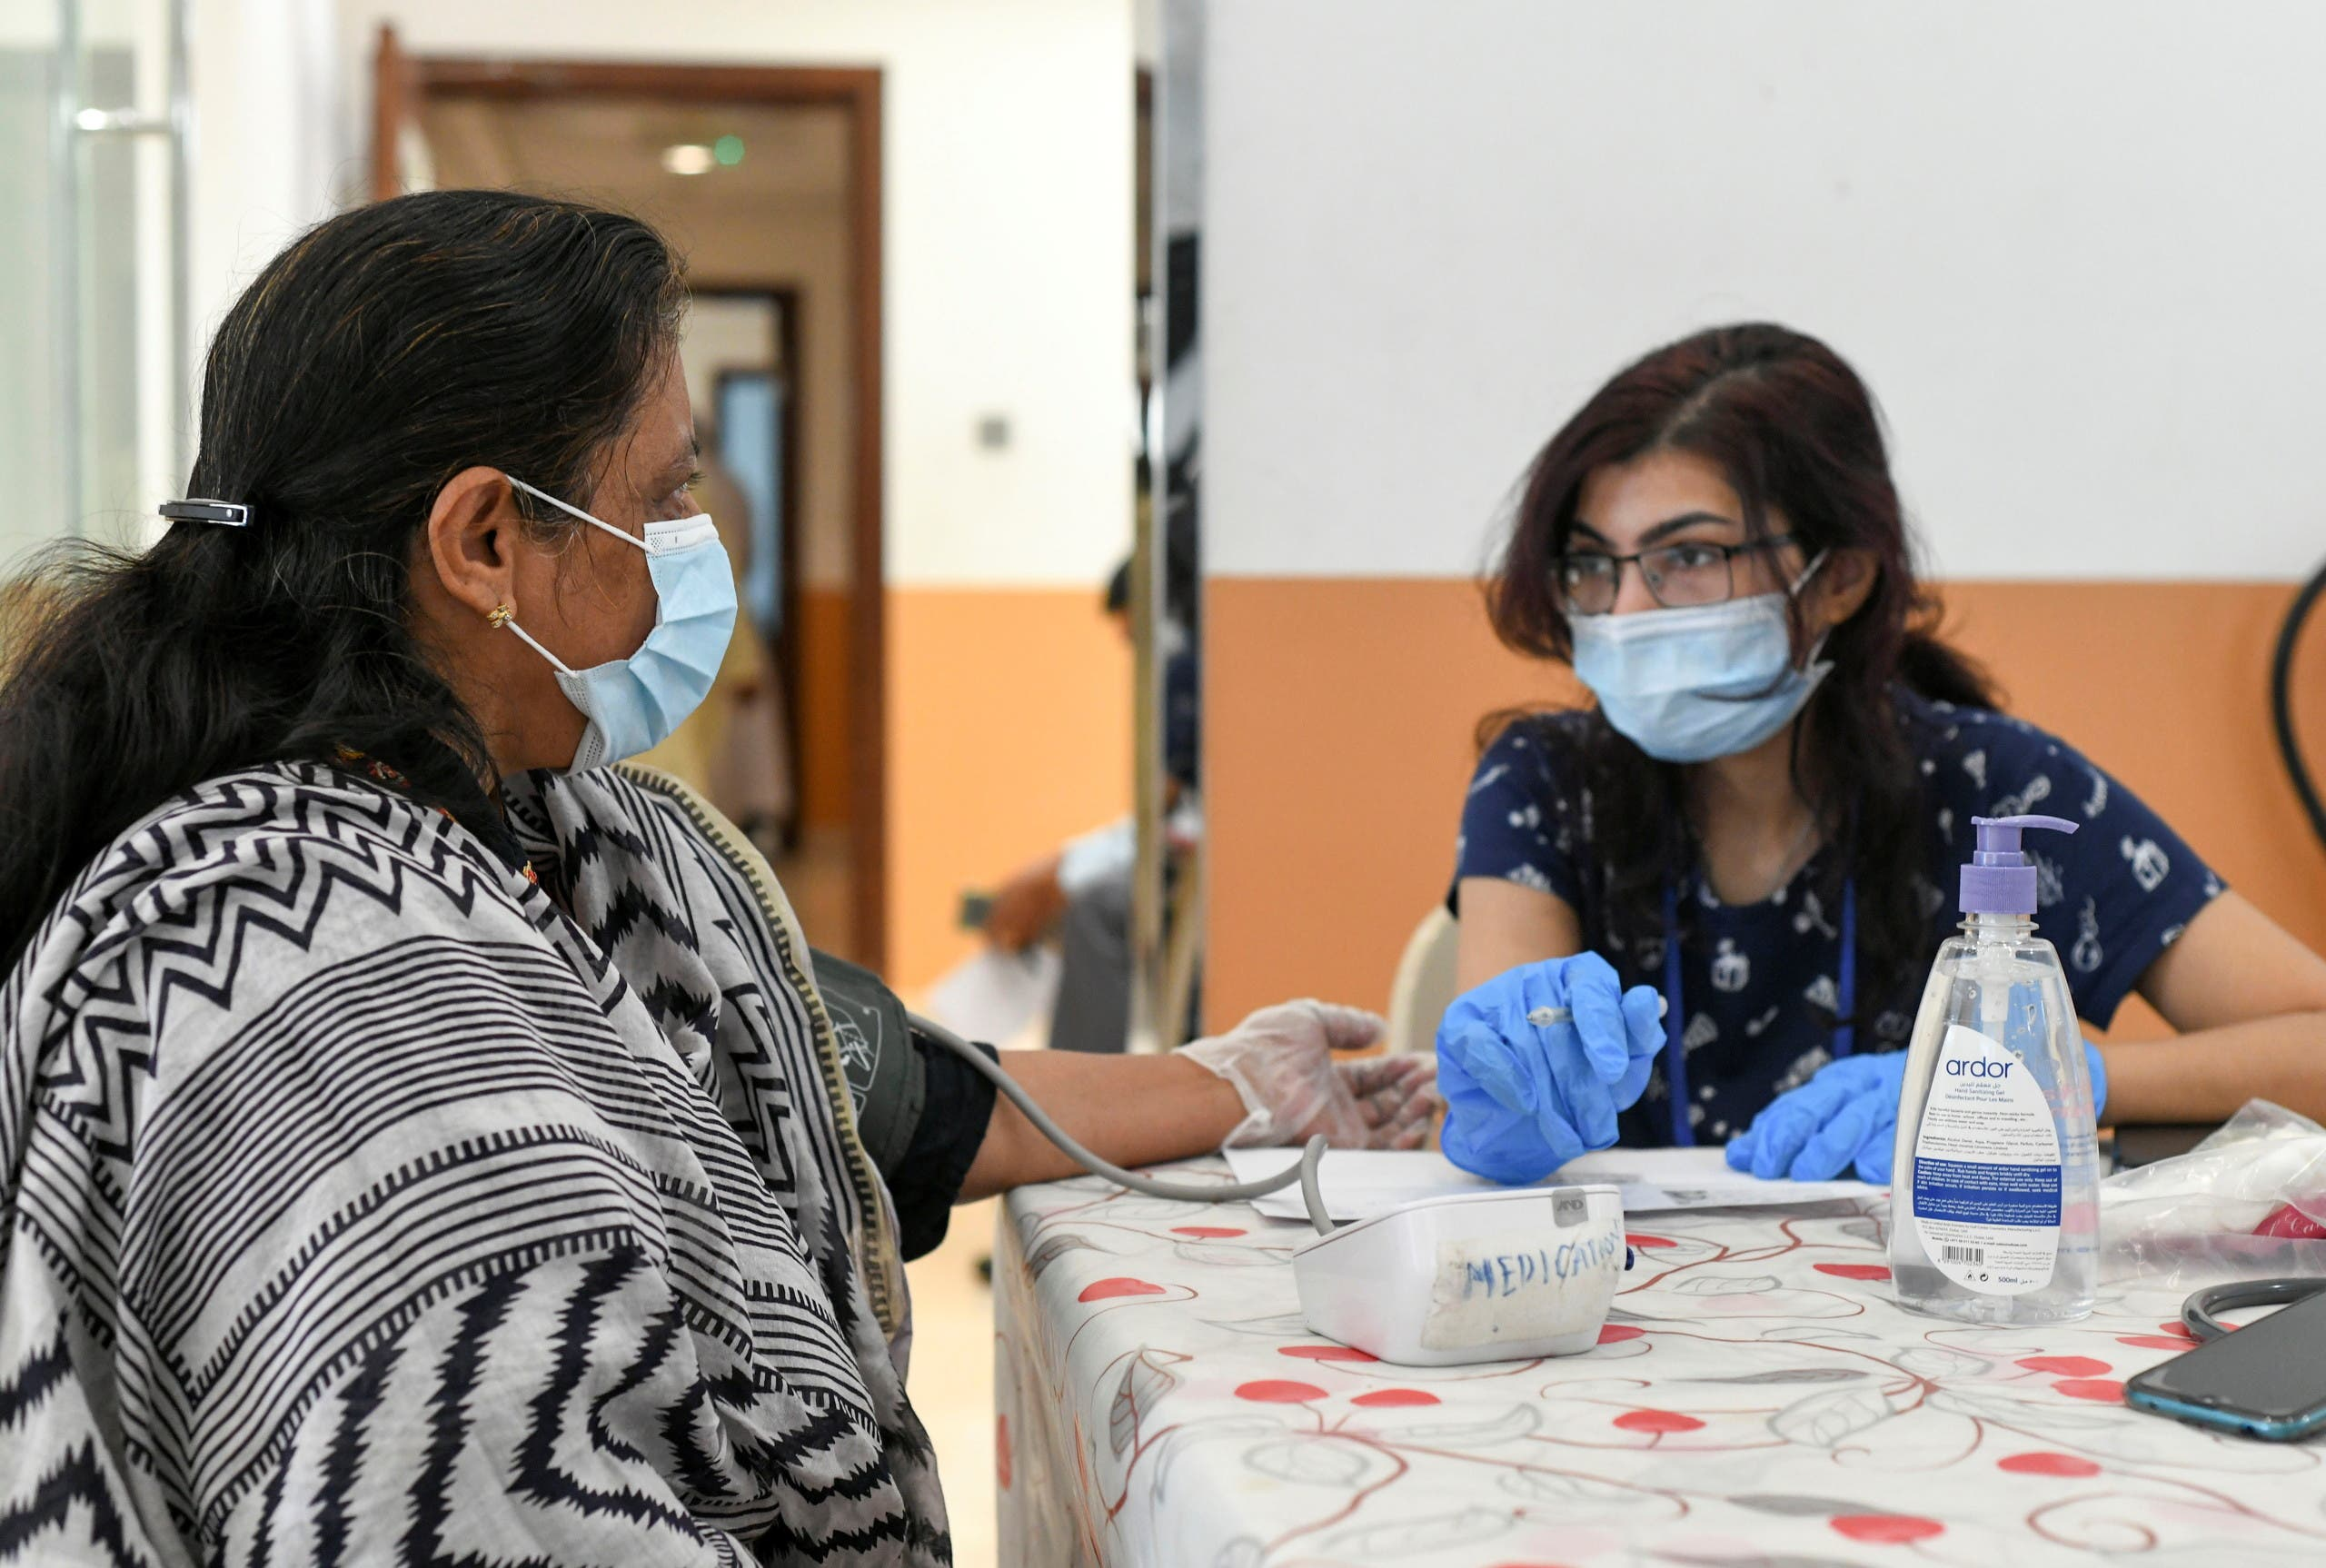 A woman gets tested before receiving a dose of a vaccine against the coronavirus at St. Paul's Church in Abu Dhabi. (Reuters)